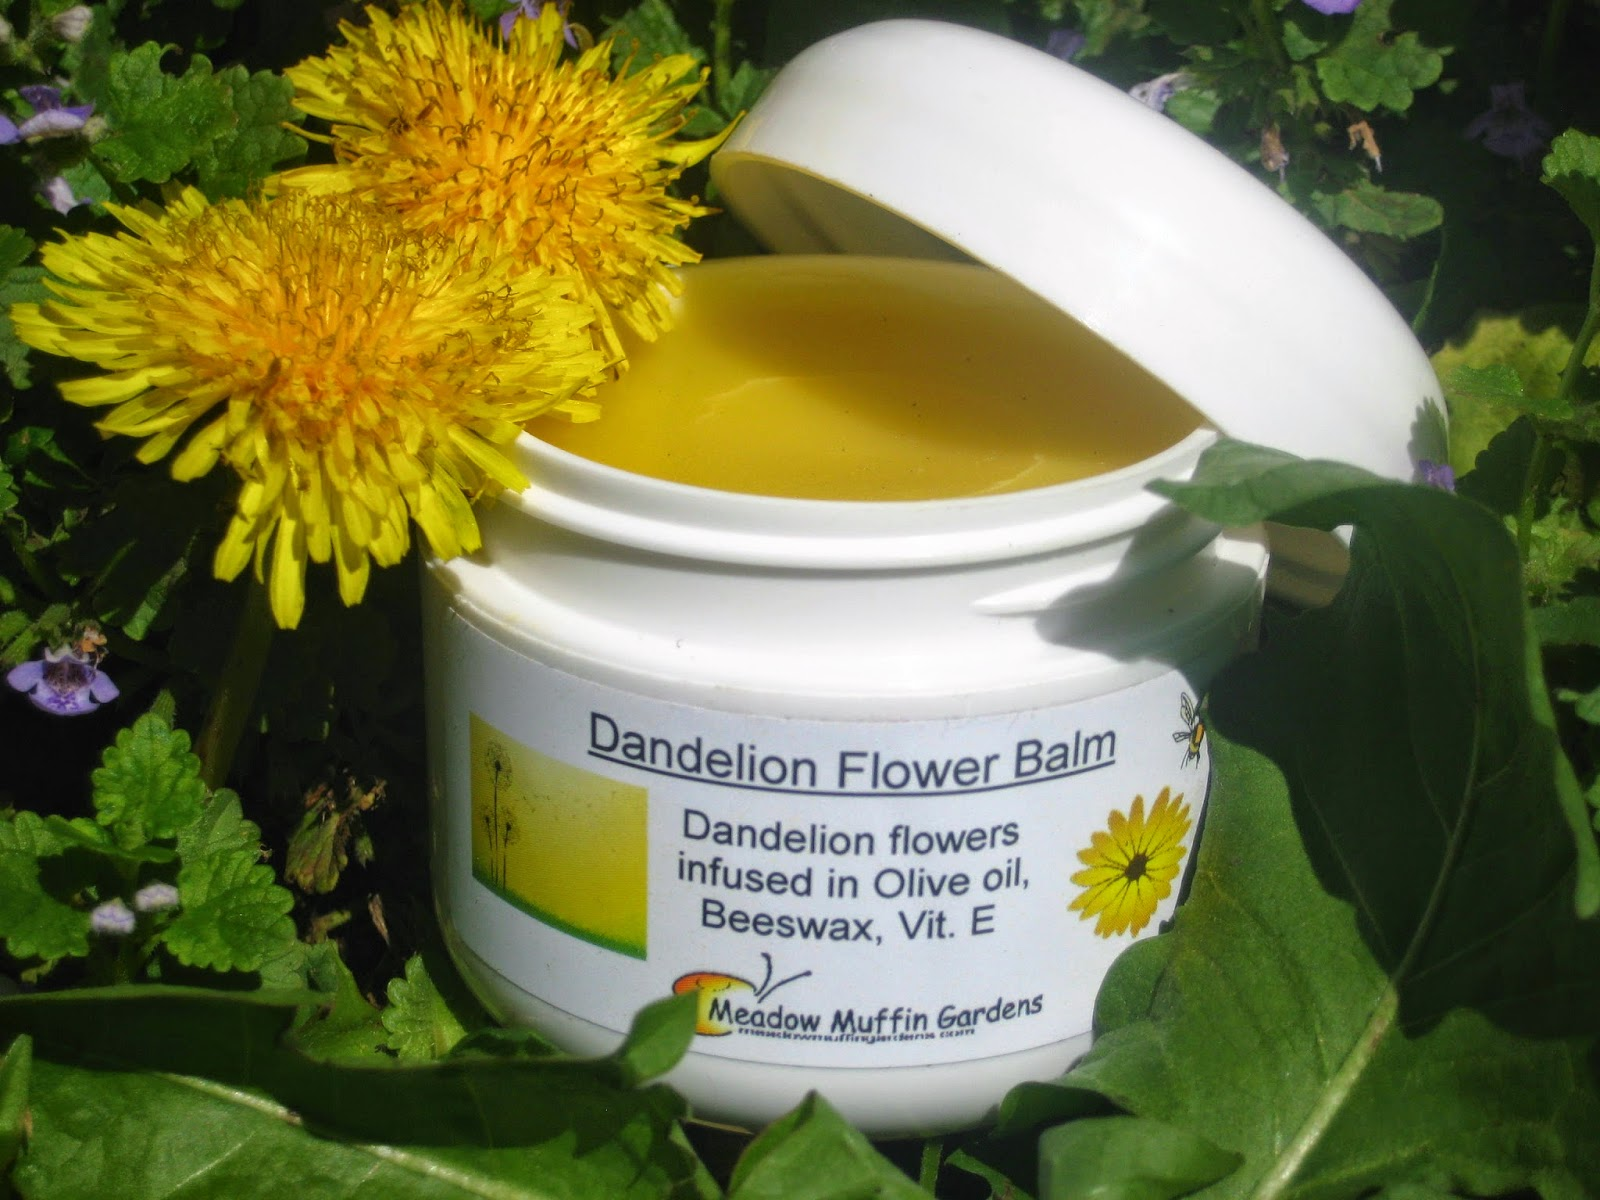 Meadow Muffin Gardens: The Dandy Dandelion, The Remedy For